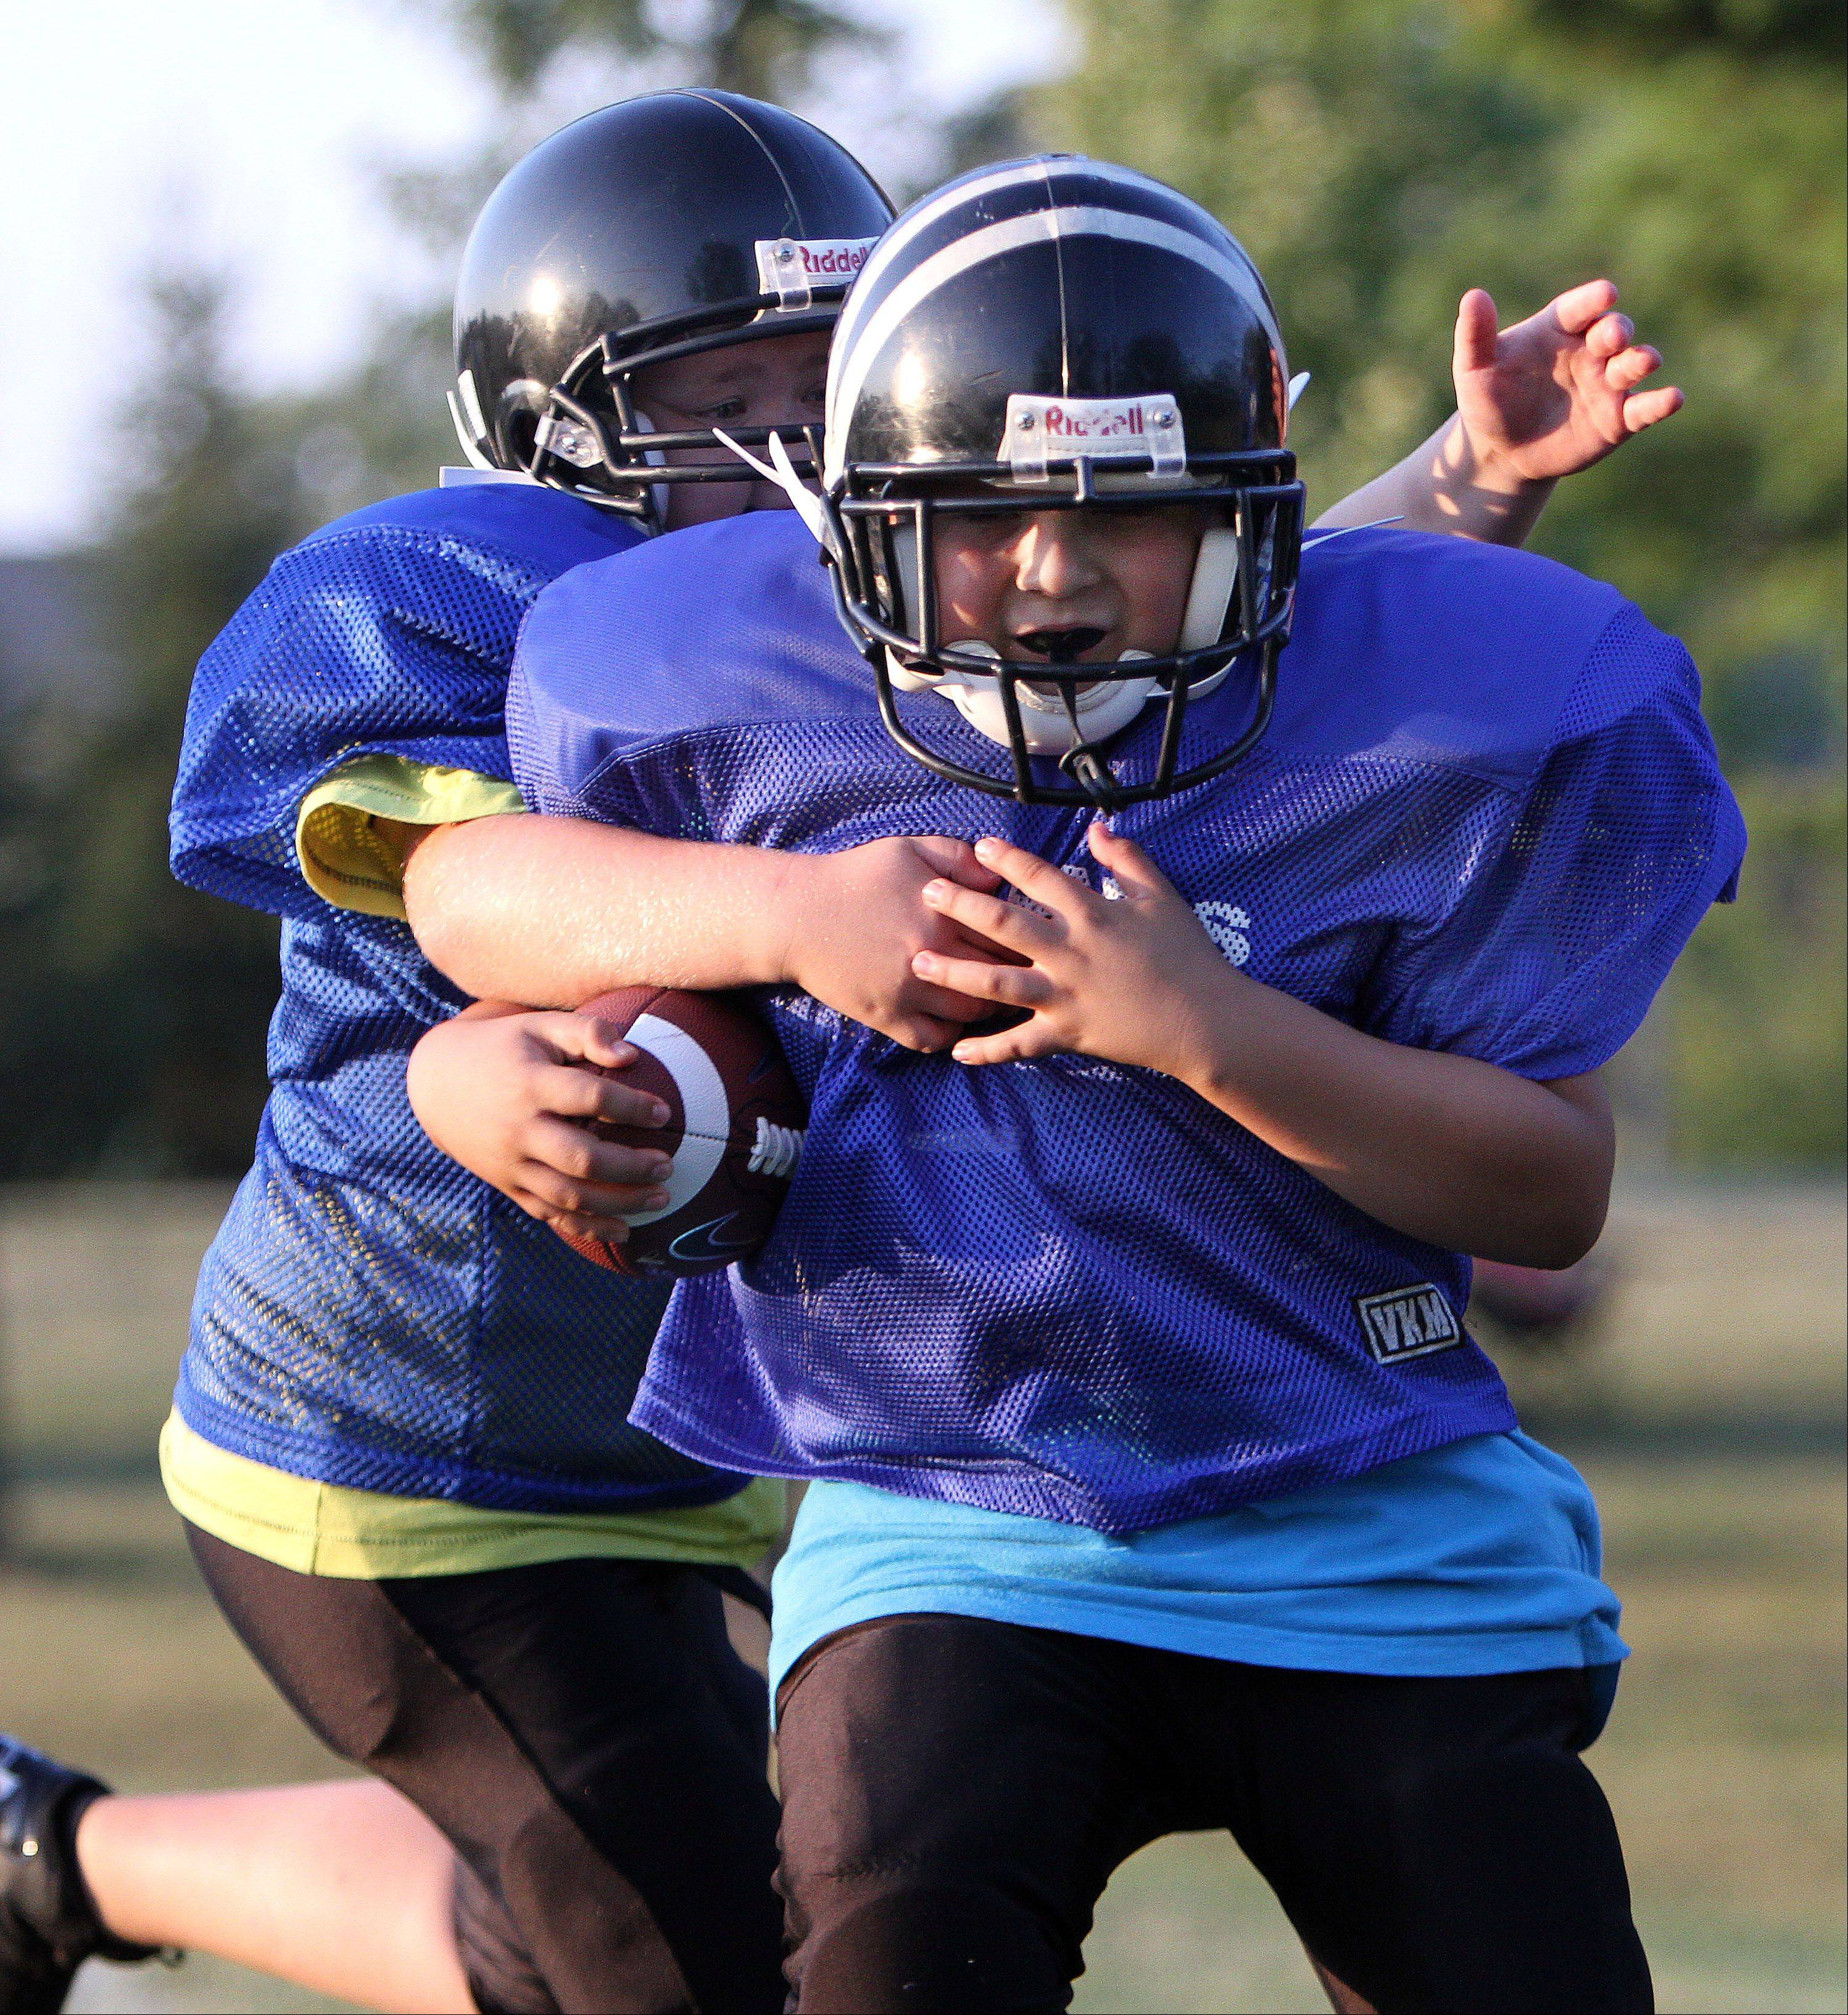 Christian Ponce, right, and Andre Neydenov, both 10 and from Lake Zurich, run through a tackling drill as the Ela Junior Bears youth football team practices at Knox Field in Lake Zurich.